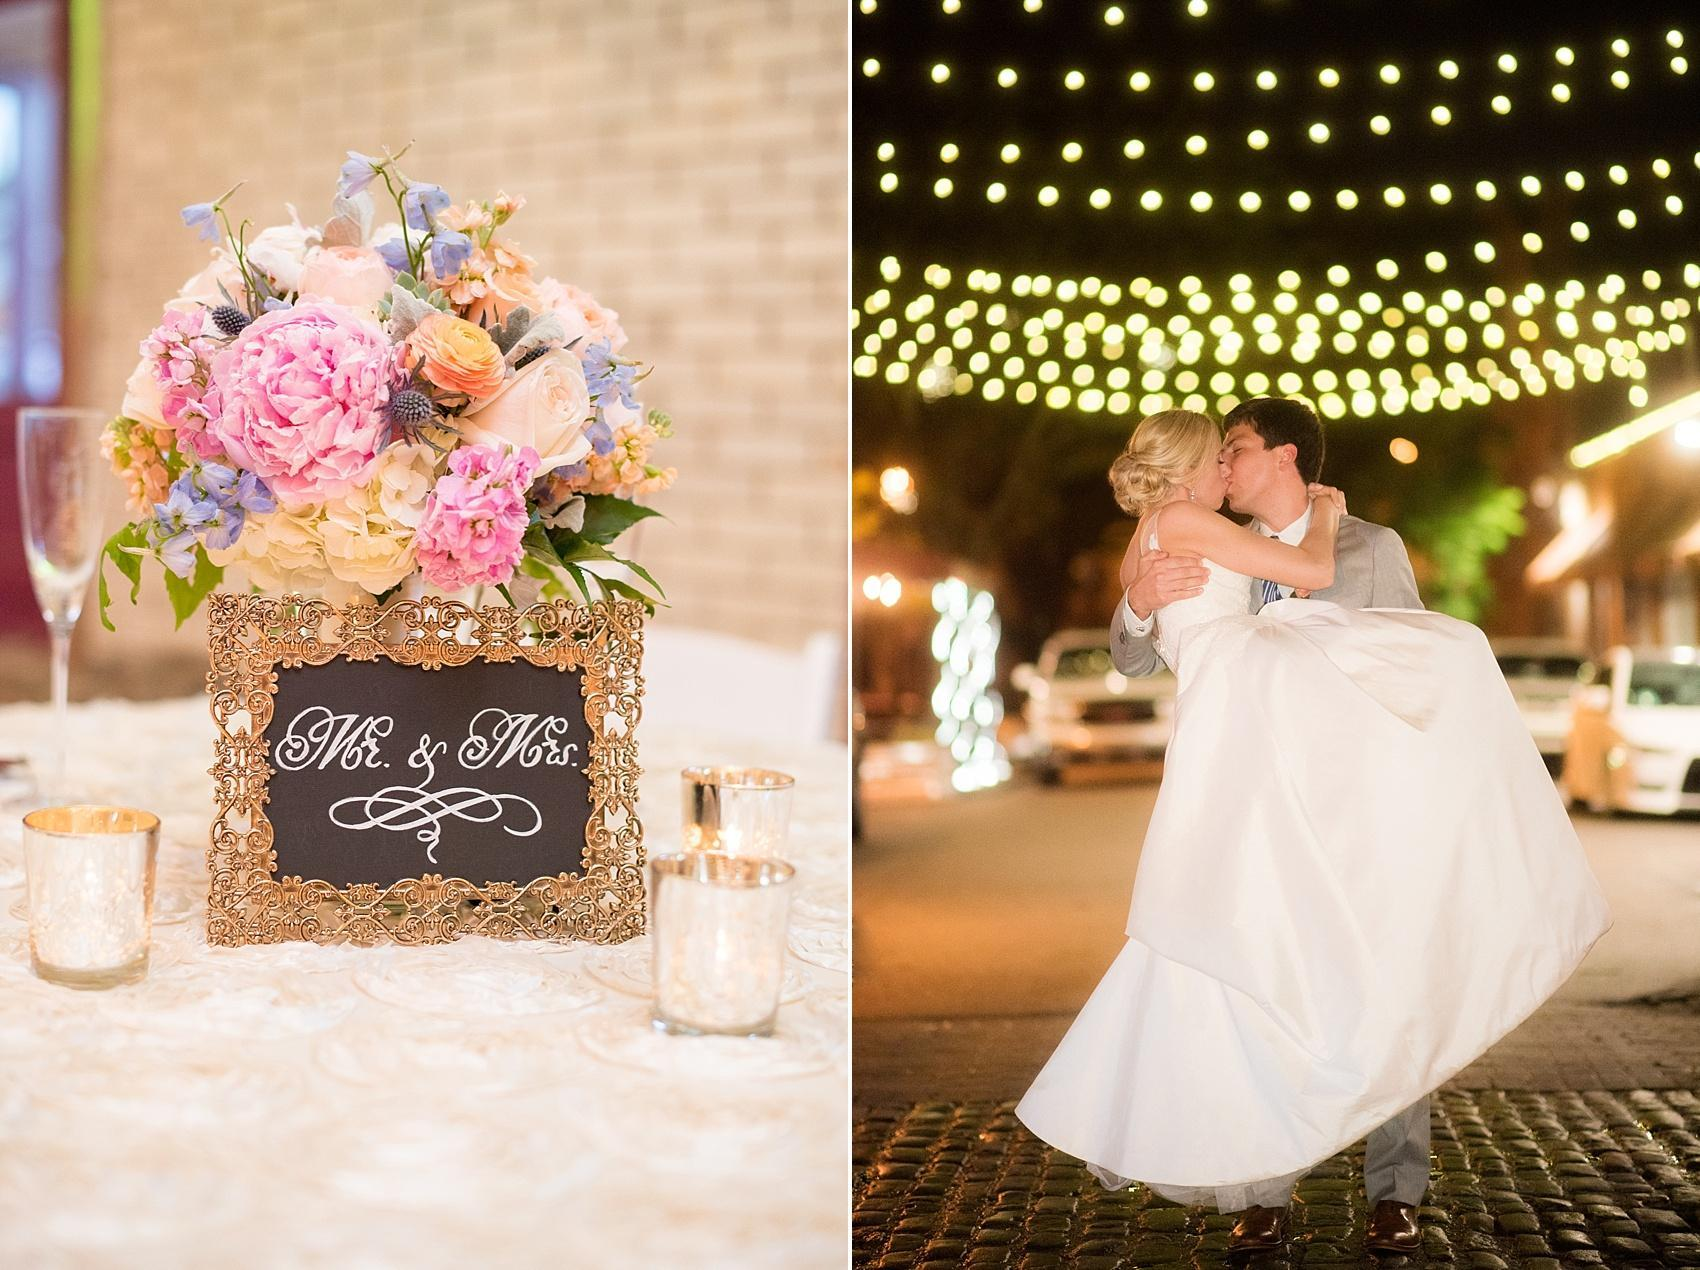 Mikkel Paige Photography photos of a wedding in downtown Raleigh at Market Hall, North Carolina. Outdoor night pictures with bistro twinkle lights and Mr. and Mrs. chalkboard sign.